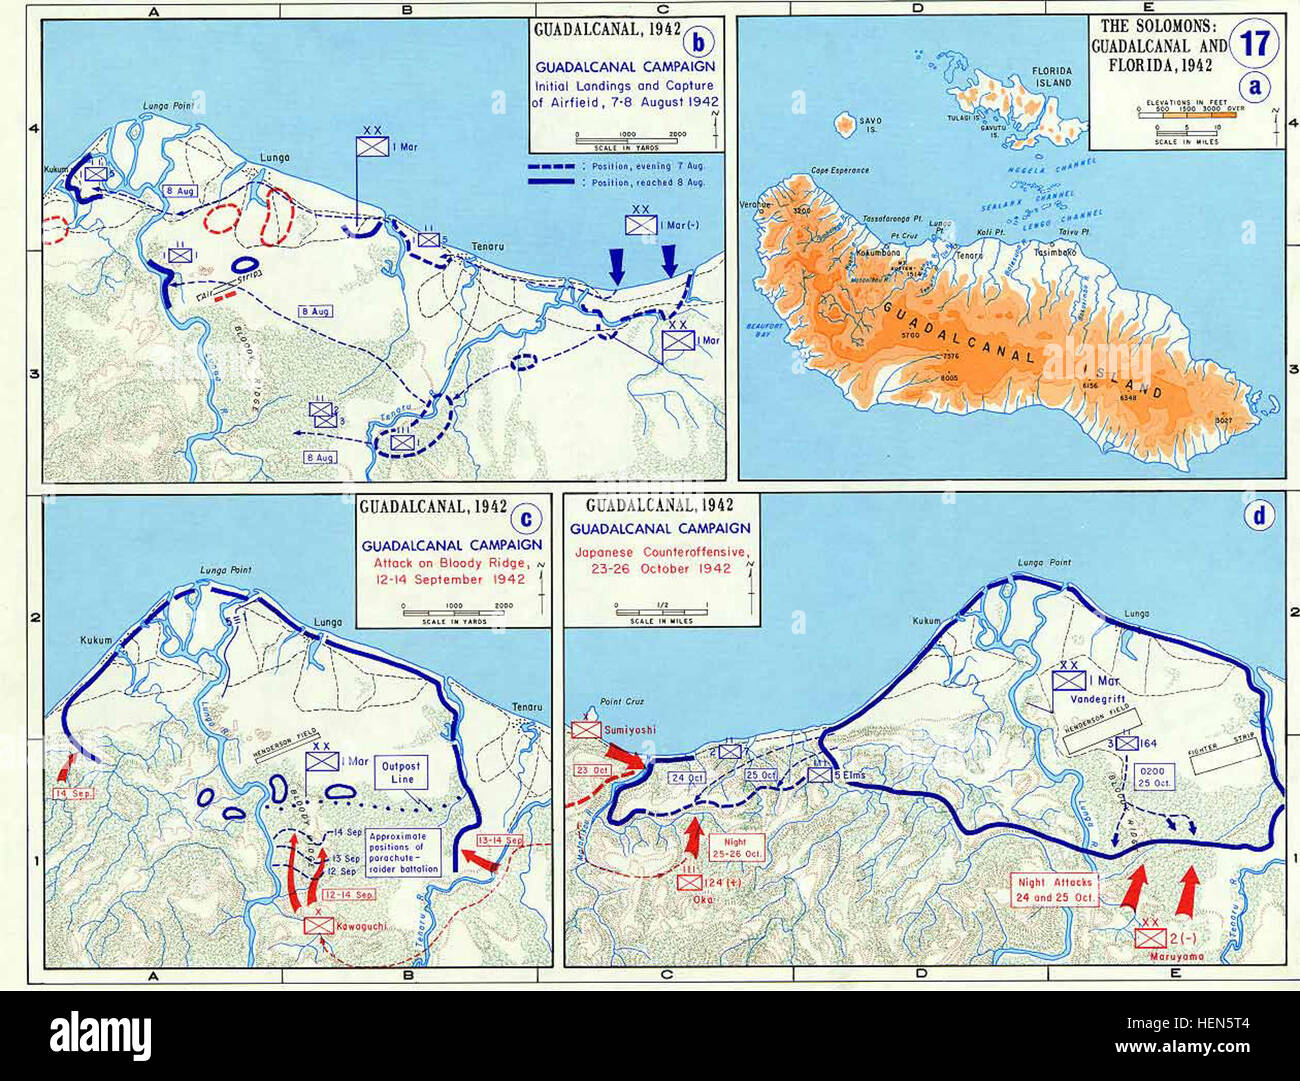 Pacific War Map Stock Photos & Pacific War Map Stock Images - Page 2 ...